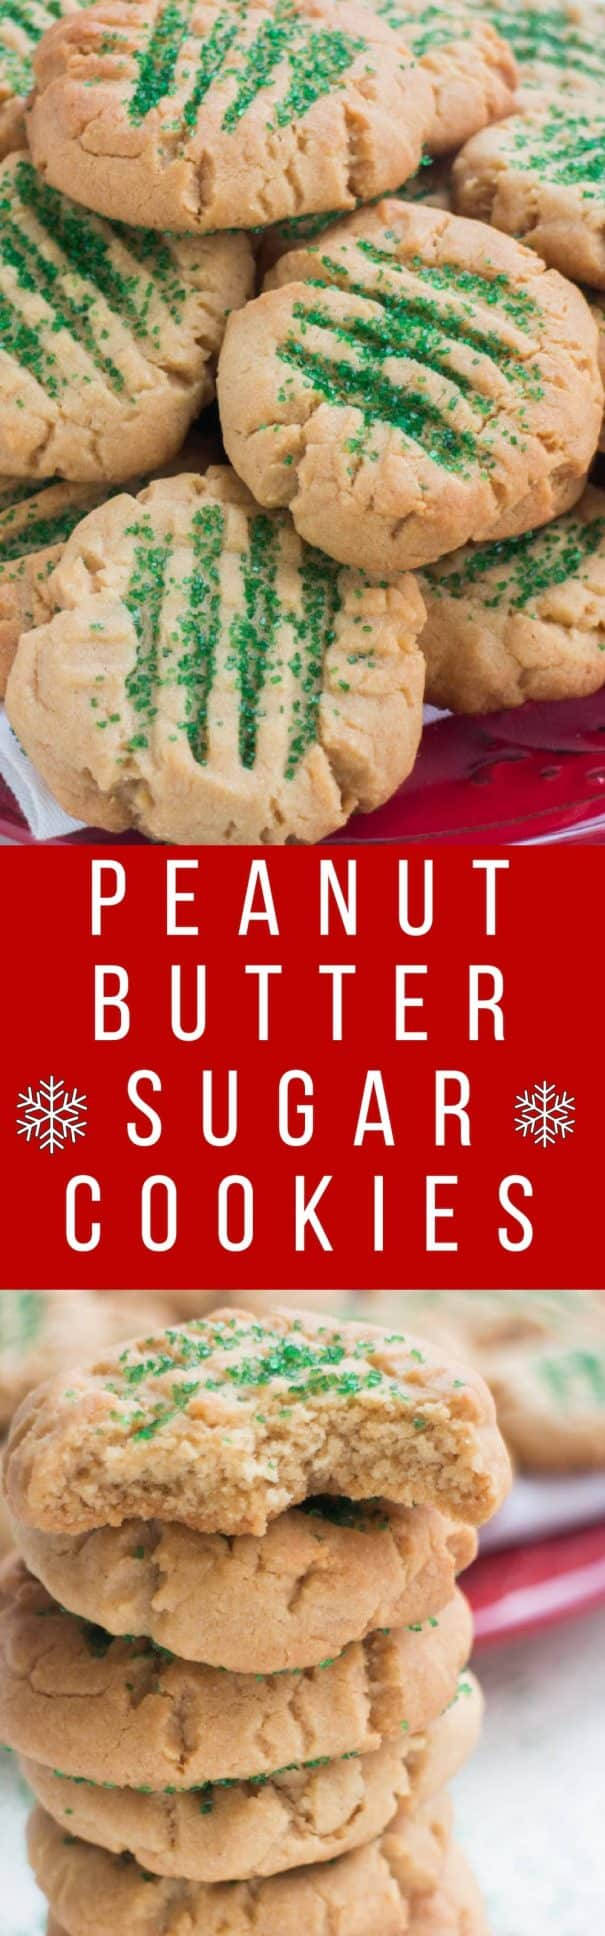 Easy Christmas Peanut Butter Cookies recipe!  Decorated with festive sprinkles, these homemade sugar cookies melt in your mouth!